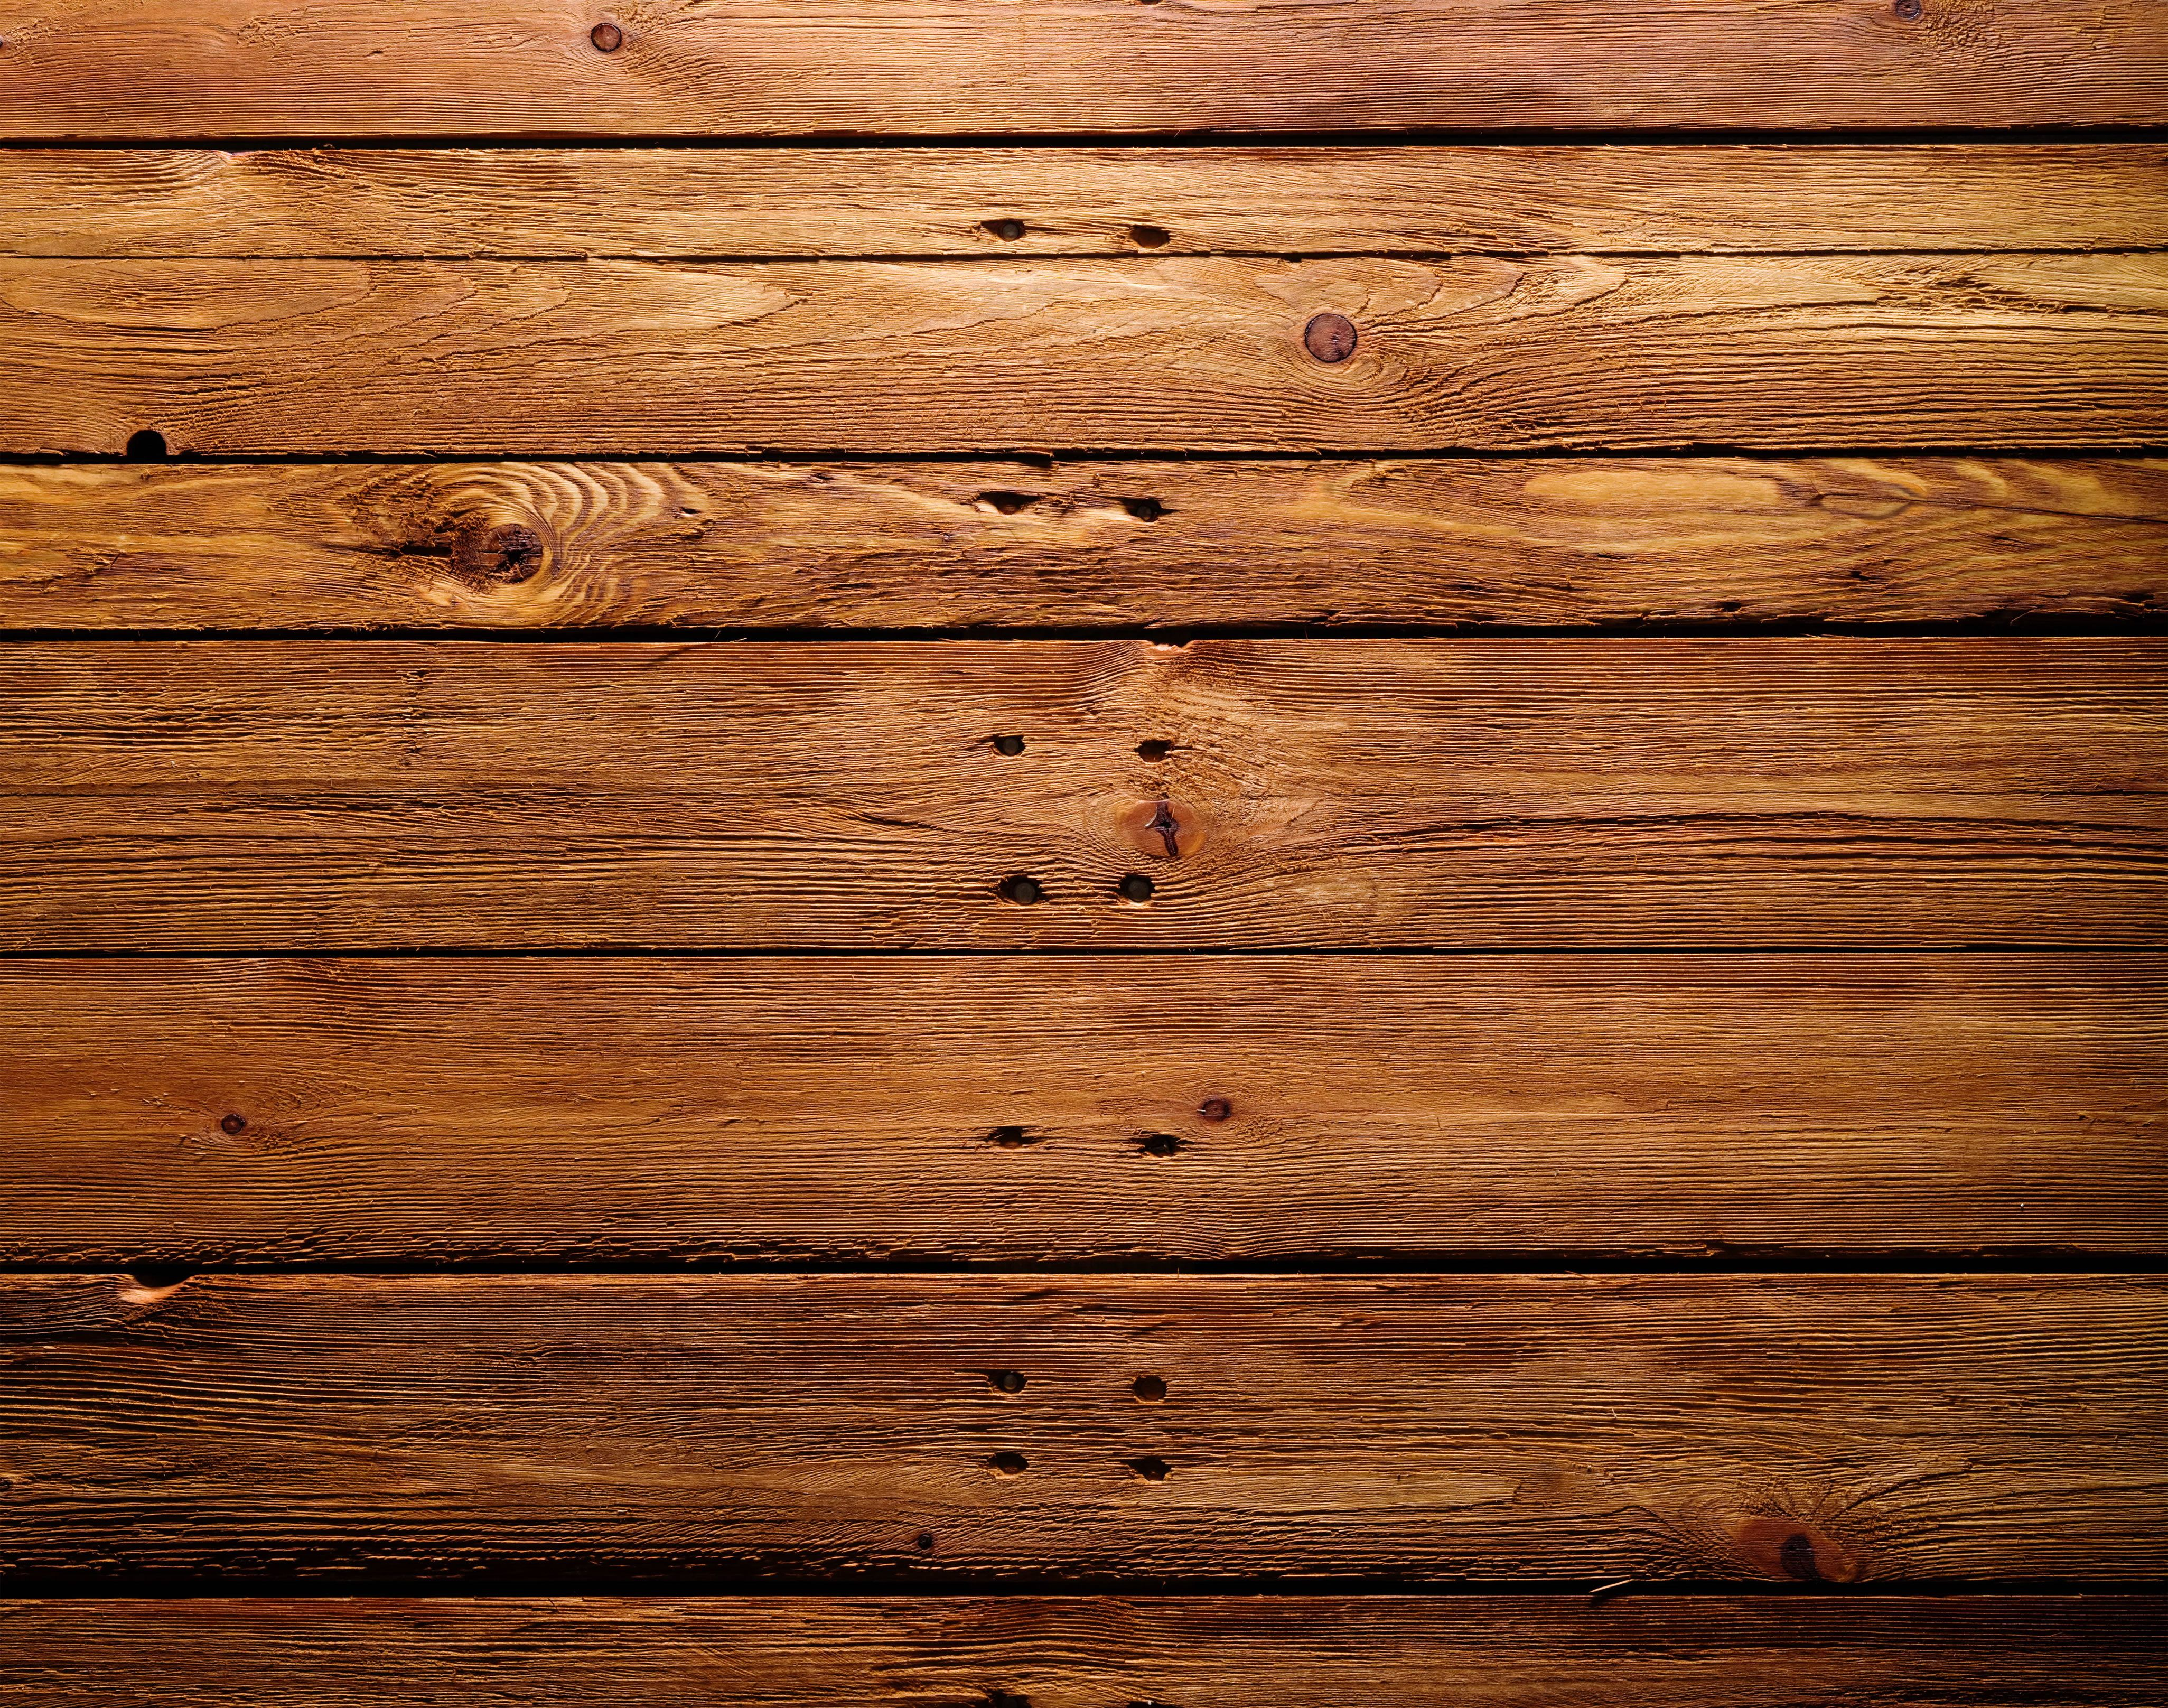 Wood Tables Pesquisa Google Wallpaper Pinterest Warm Sheds And